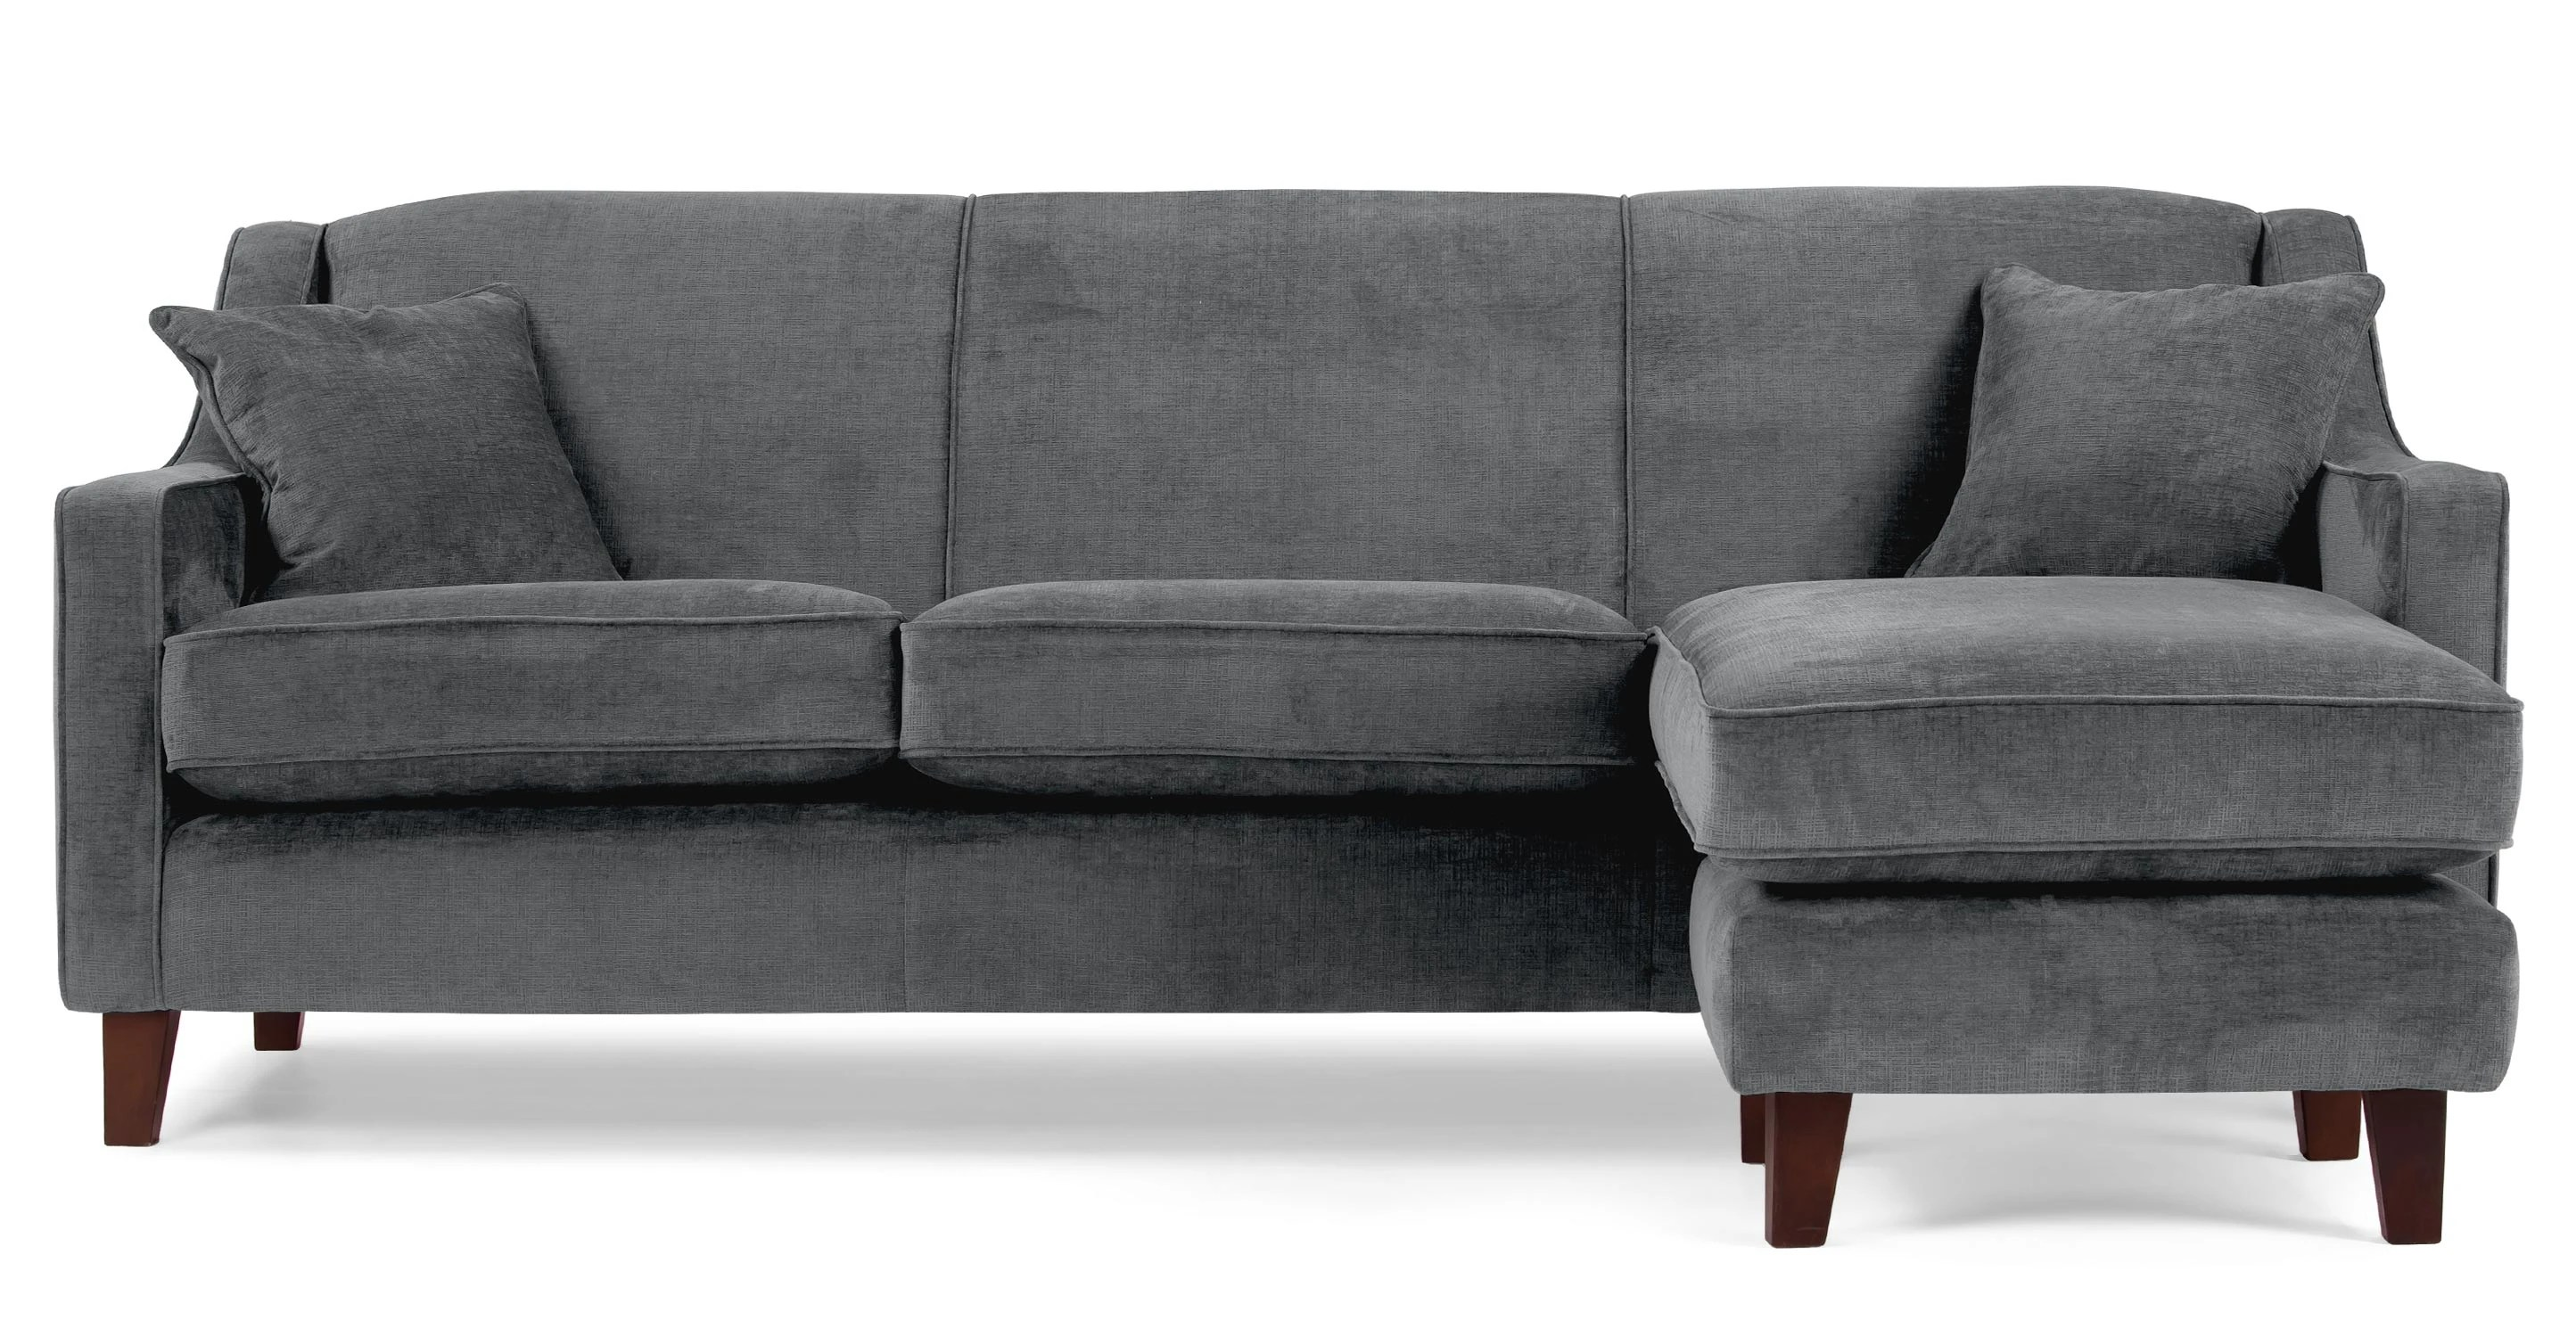 Corner Couch Halston Large Corner Sofa In Dusk Grey Made